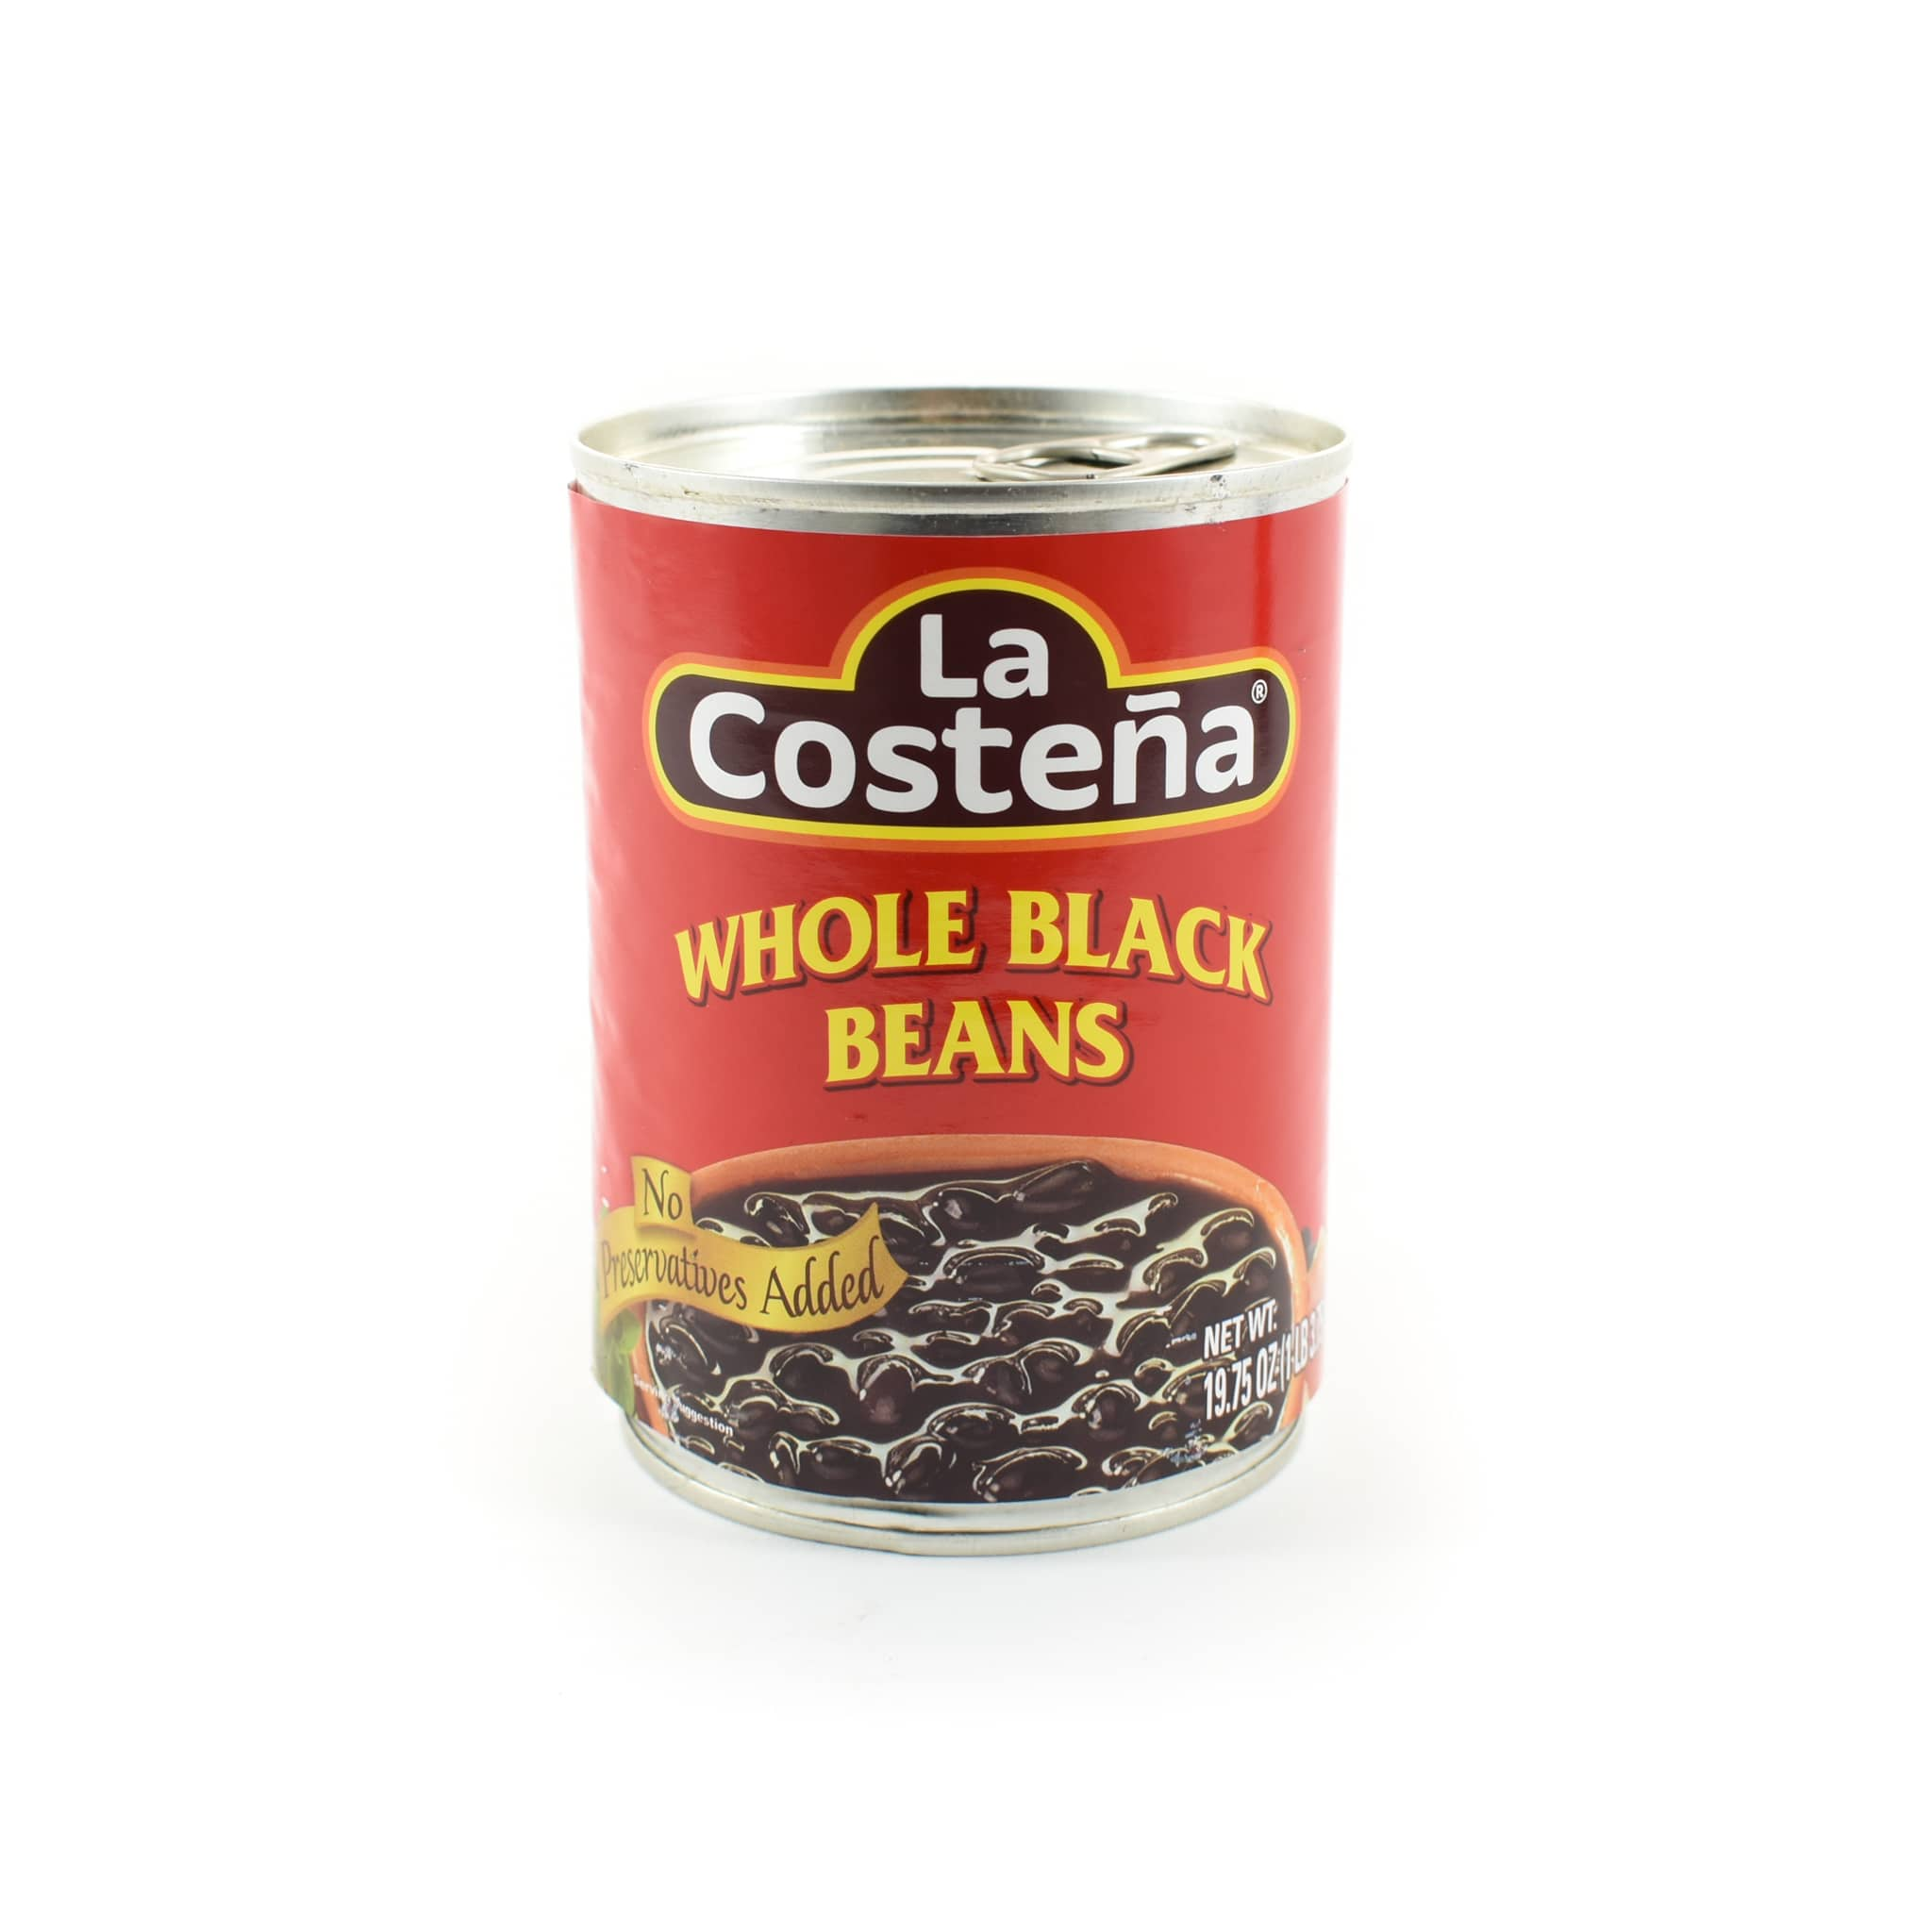 La Costena Whole Black Beans 540g